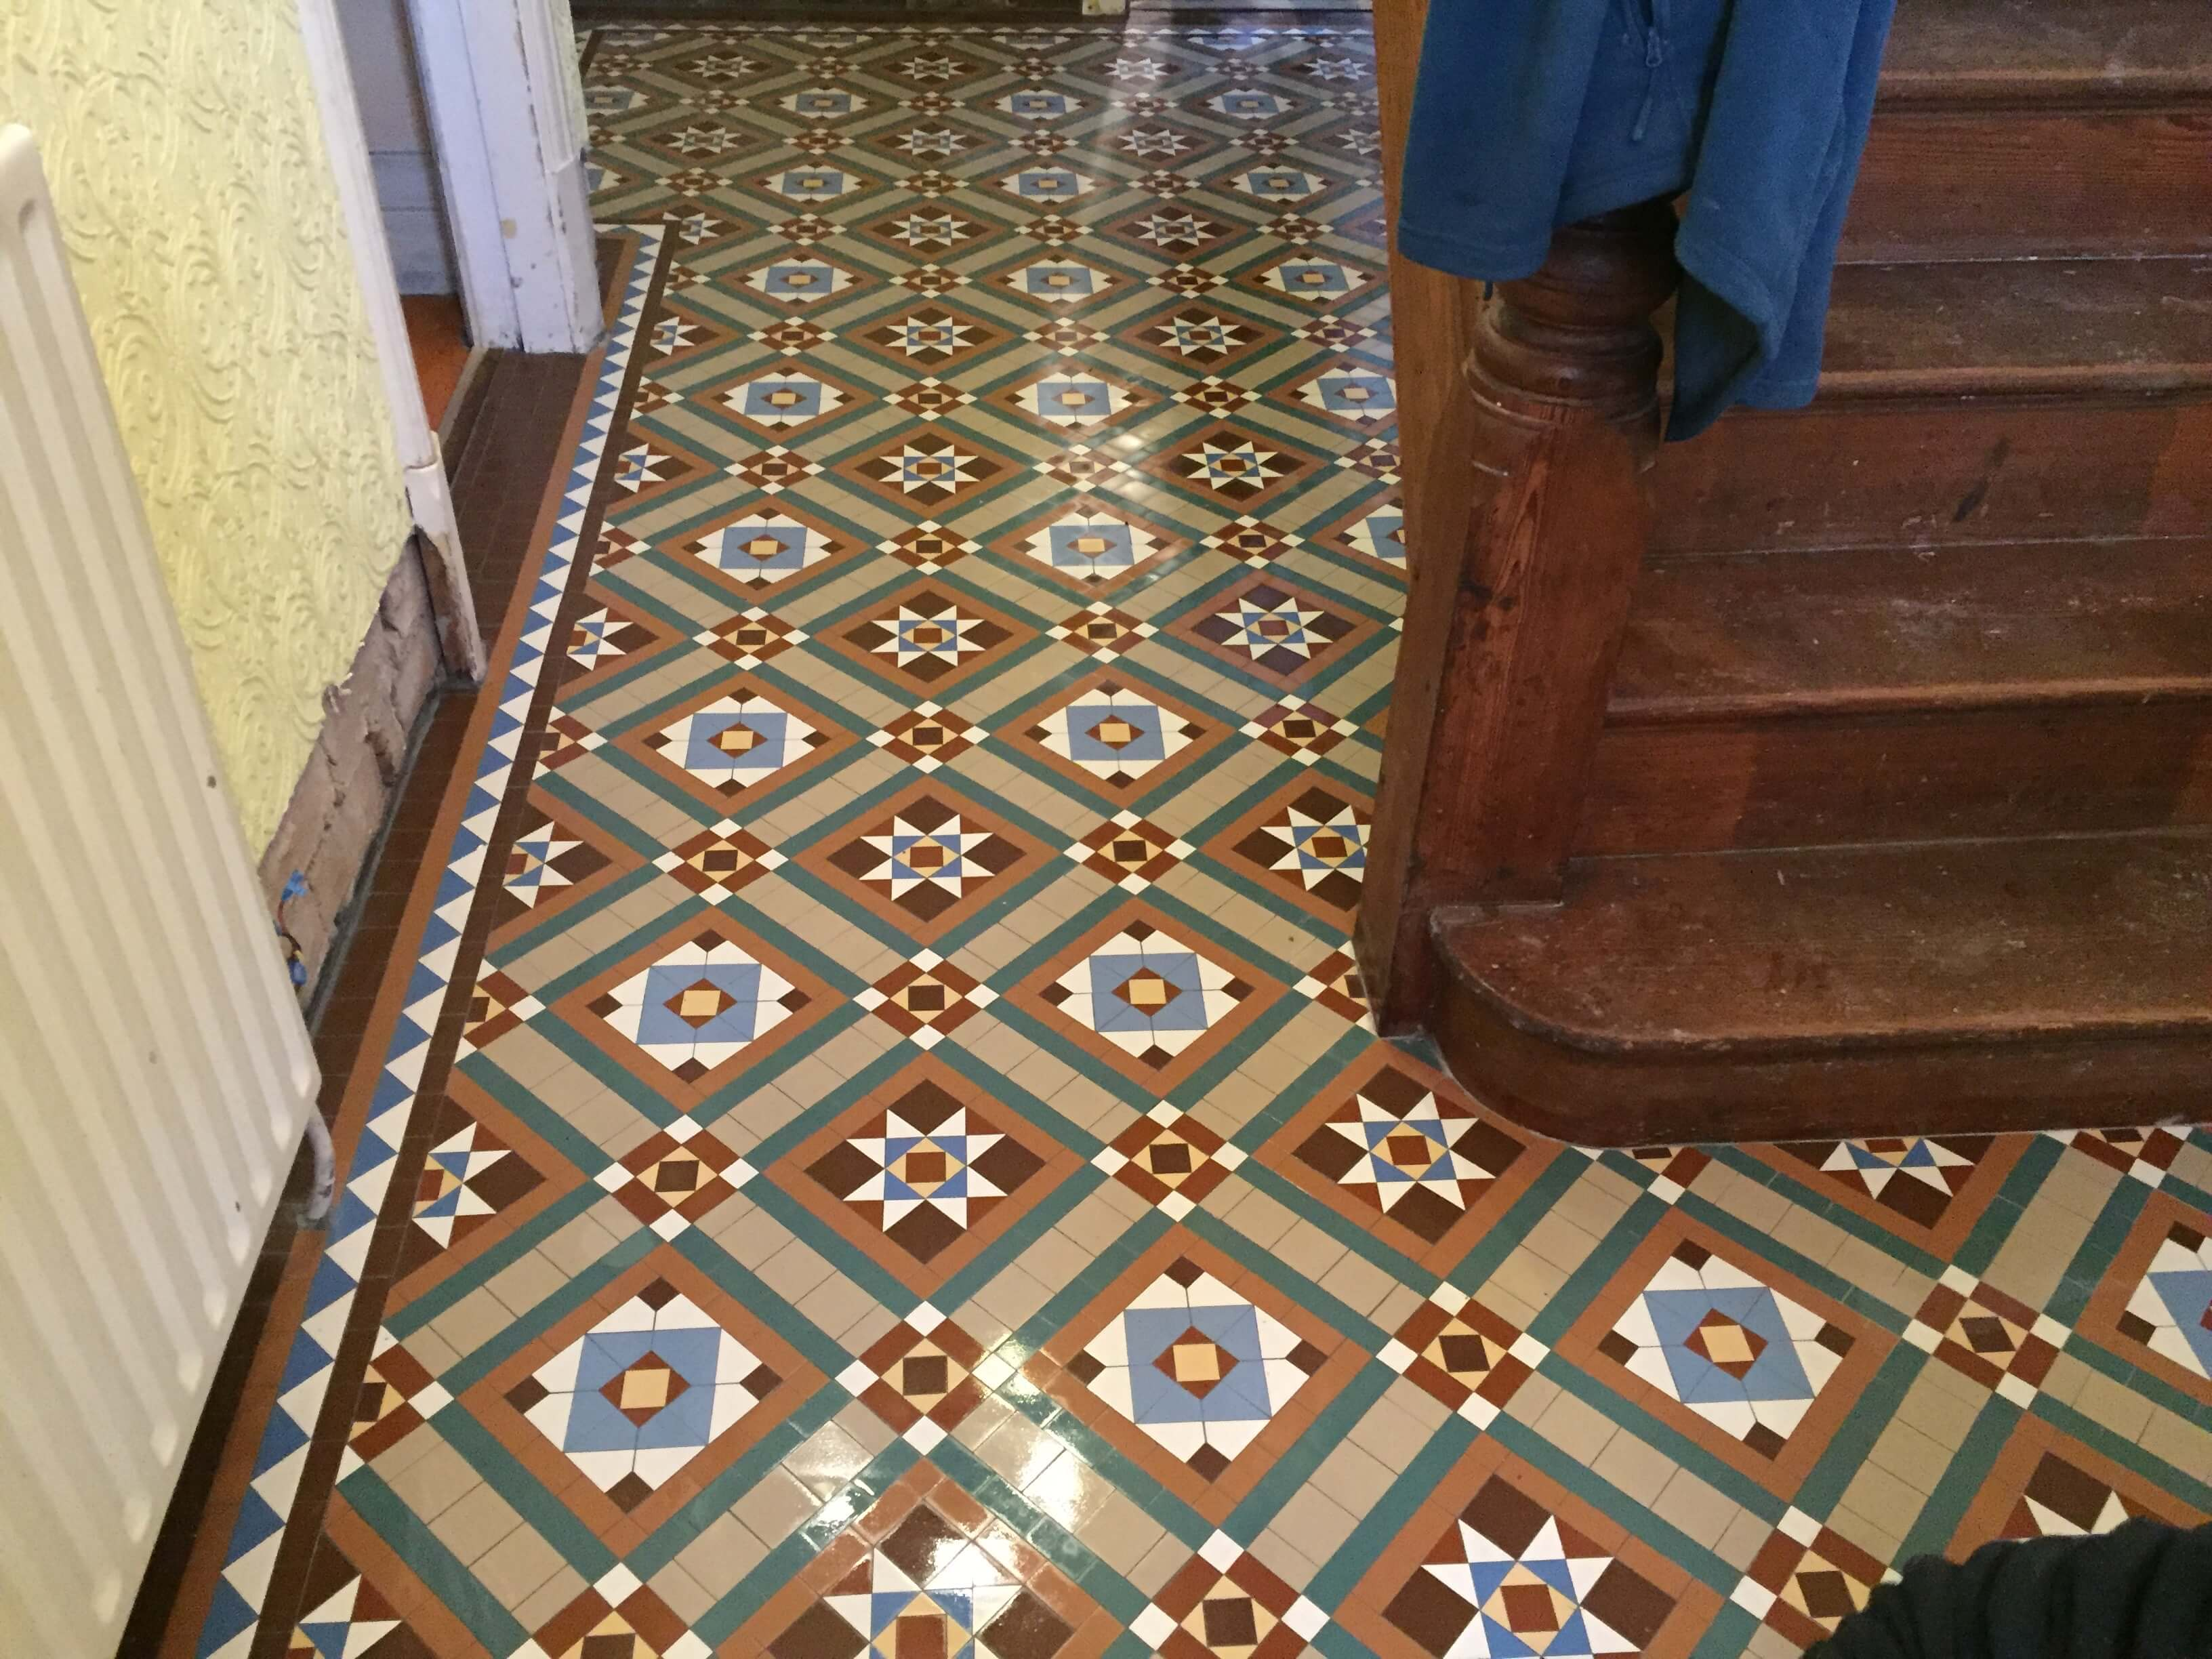 Private house in Leicester, new bespoke geometric tile installation